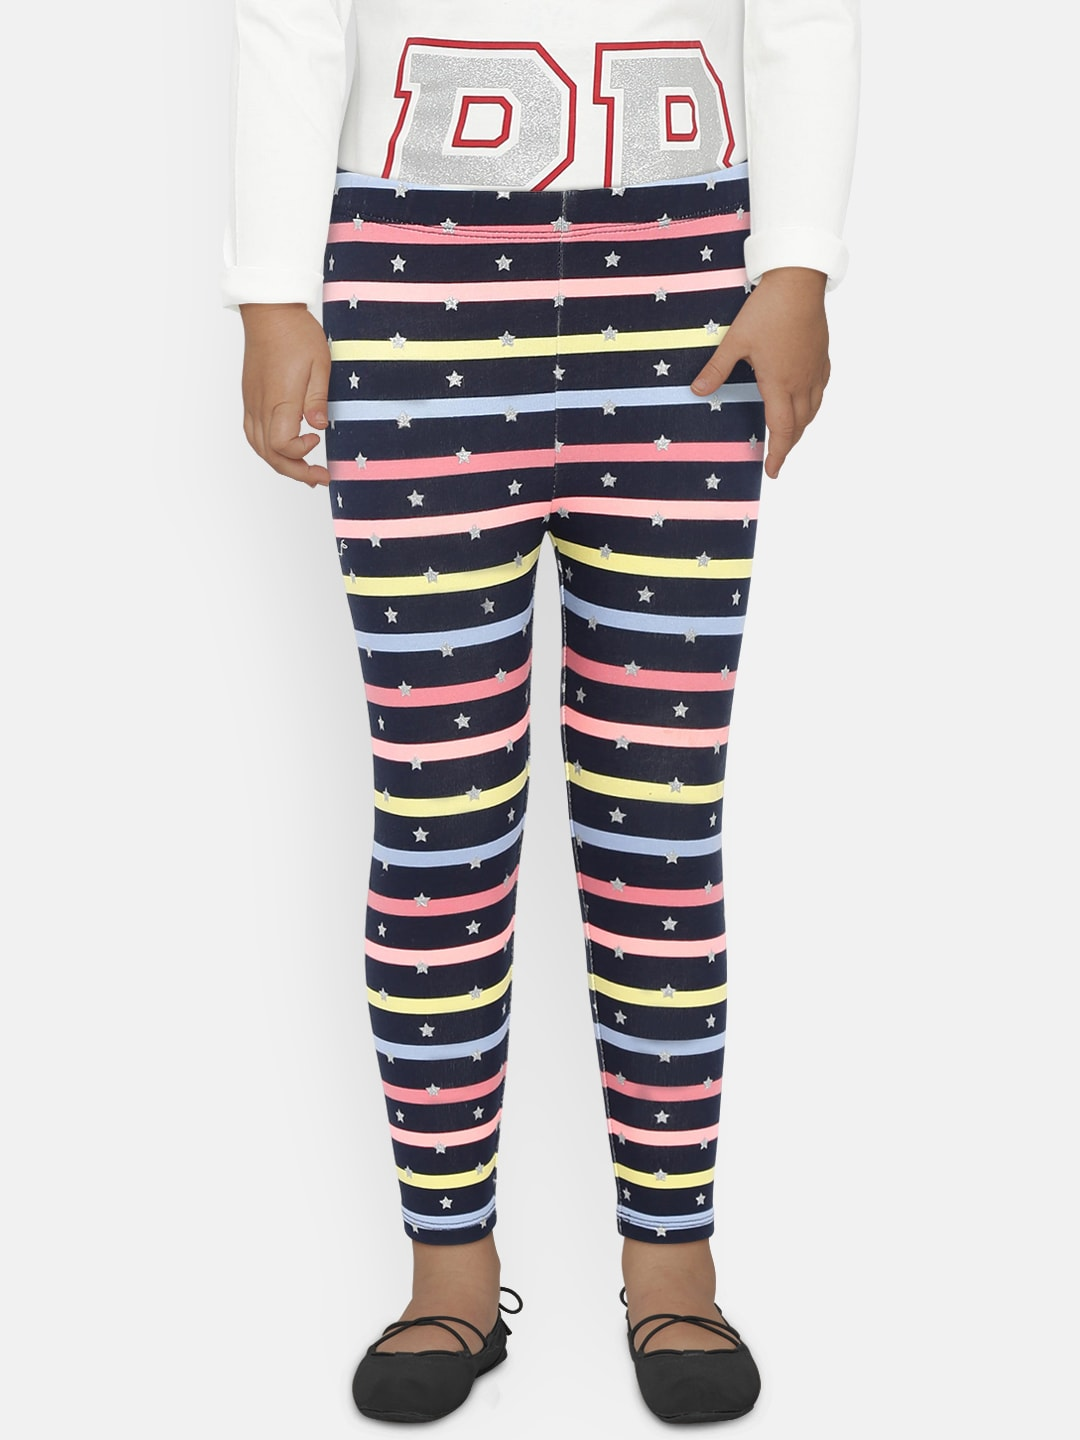 deb7a1cce5 Kids Leggings - Buy Kids Leggings online in India